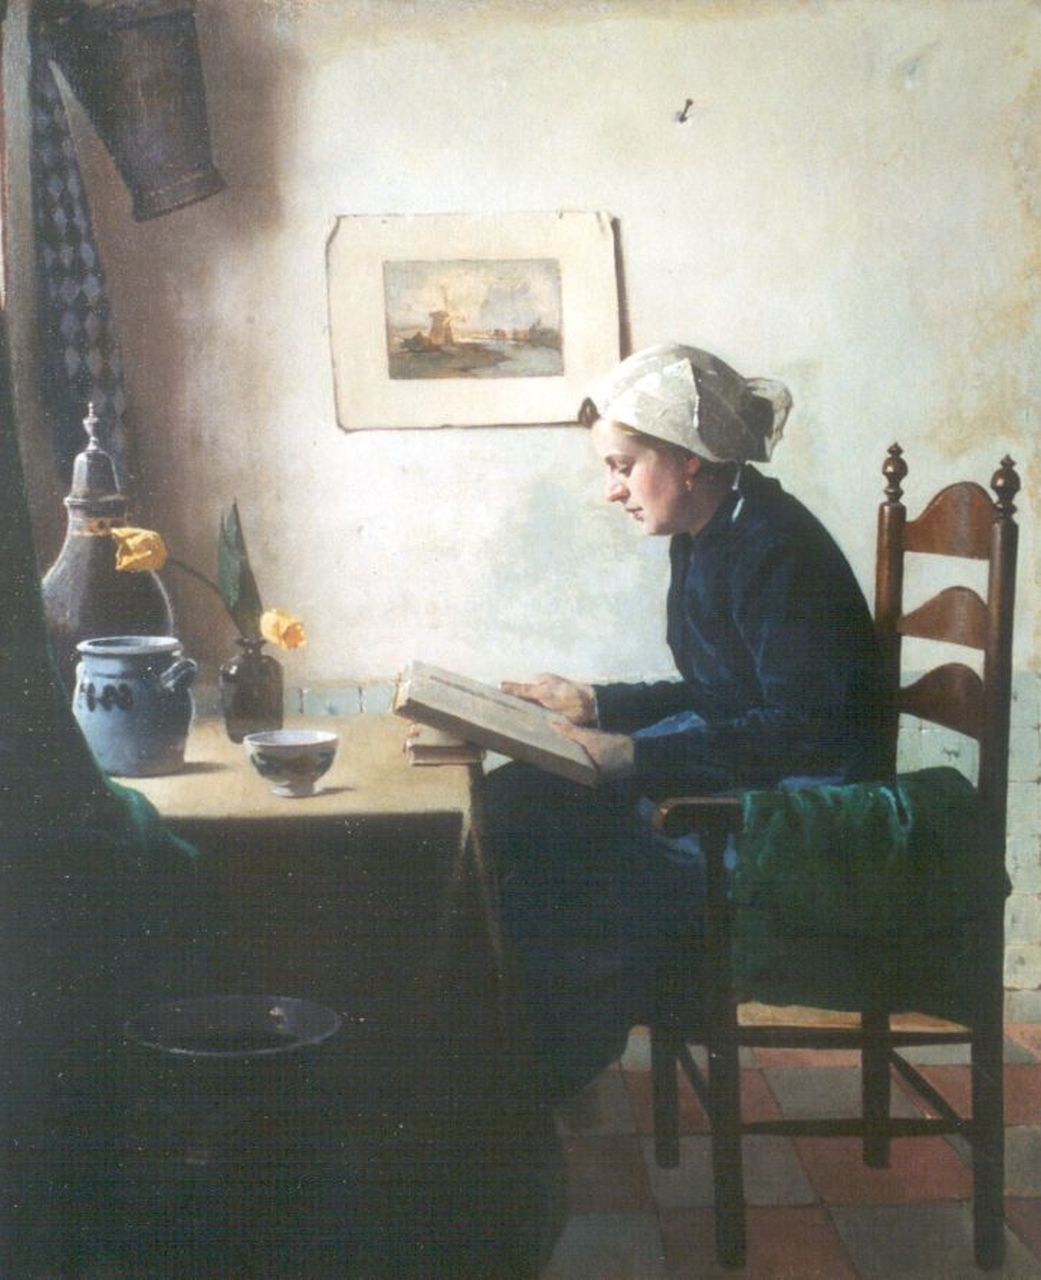 Ligtelijn E.J.  | Evert Jan Ligtelijn, Reading a book, oil on canvas 60.3 x 50.0 cm, signed l.l.